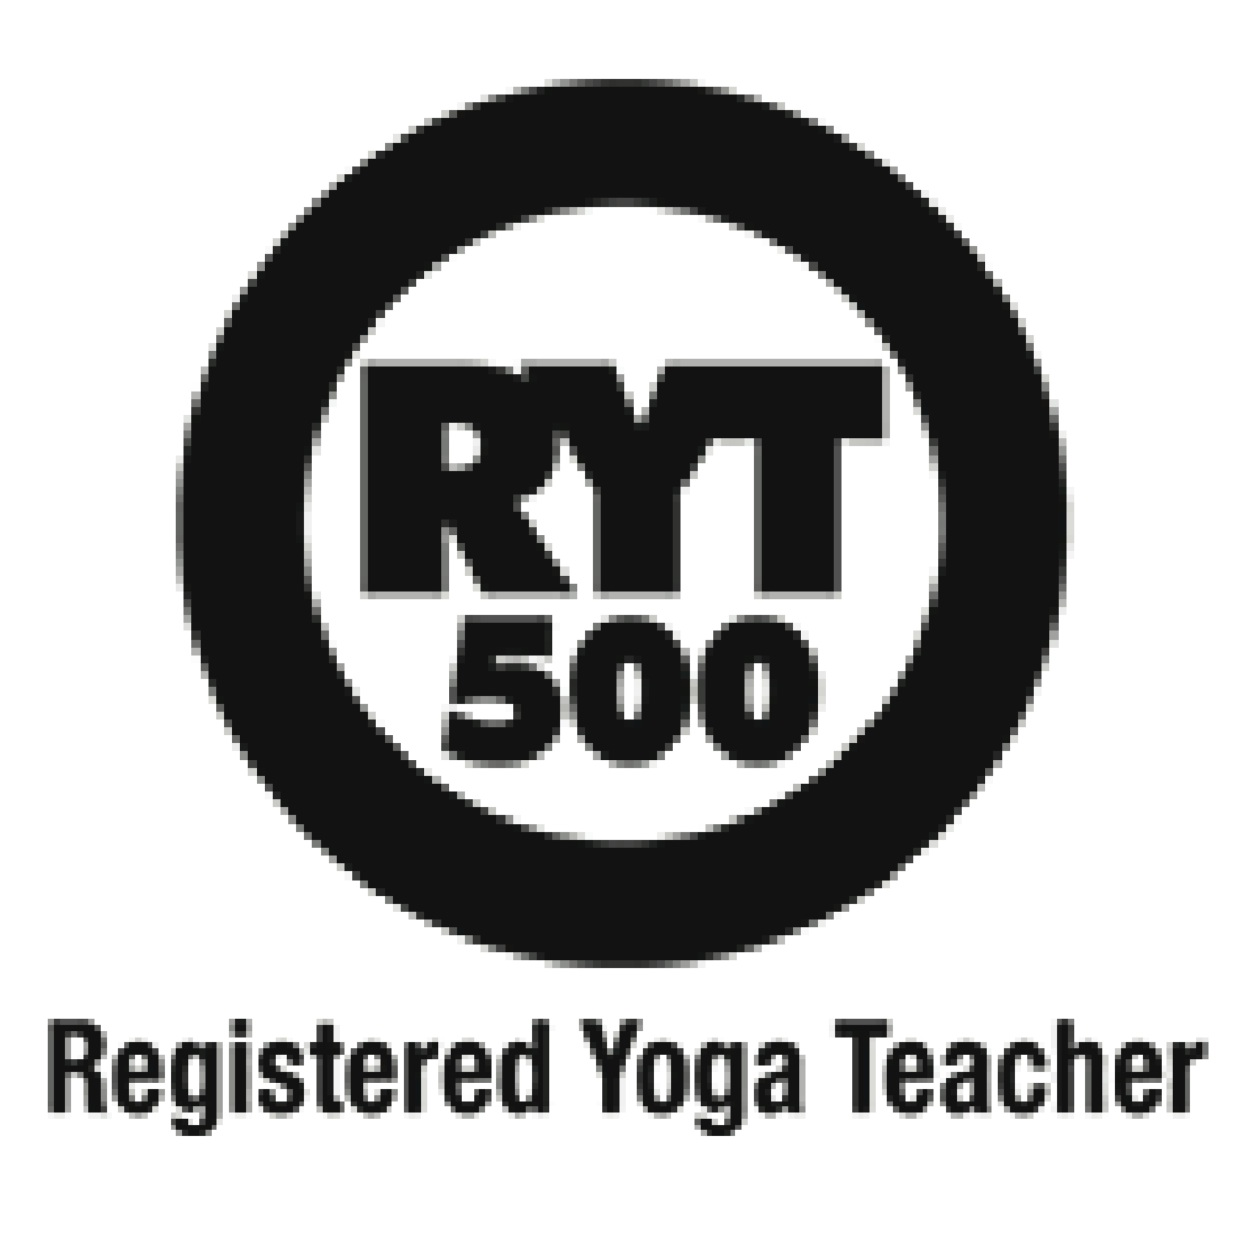 Reg trademark symbol images symbols and meanings edmonton area yoga teacher training yoga for today become biocorpaavc images biocorpaavc Choice Image